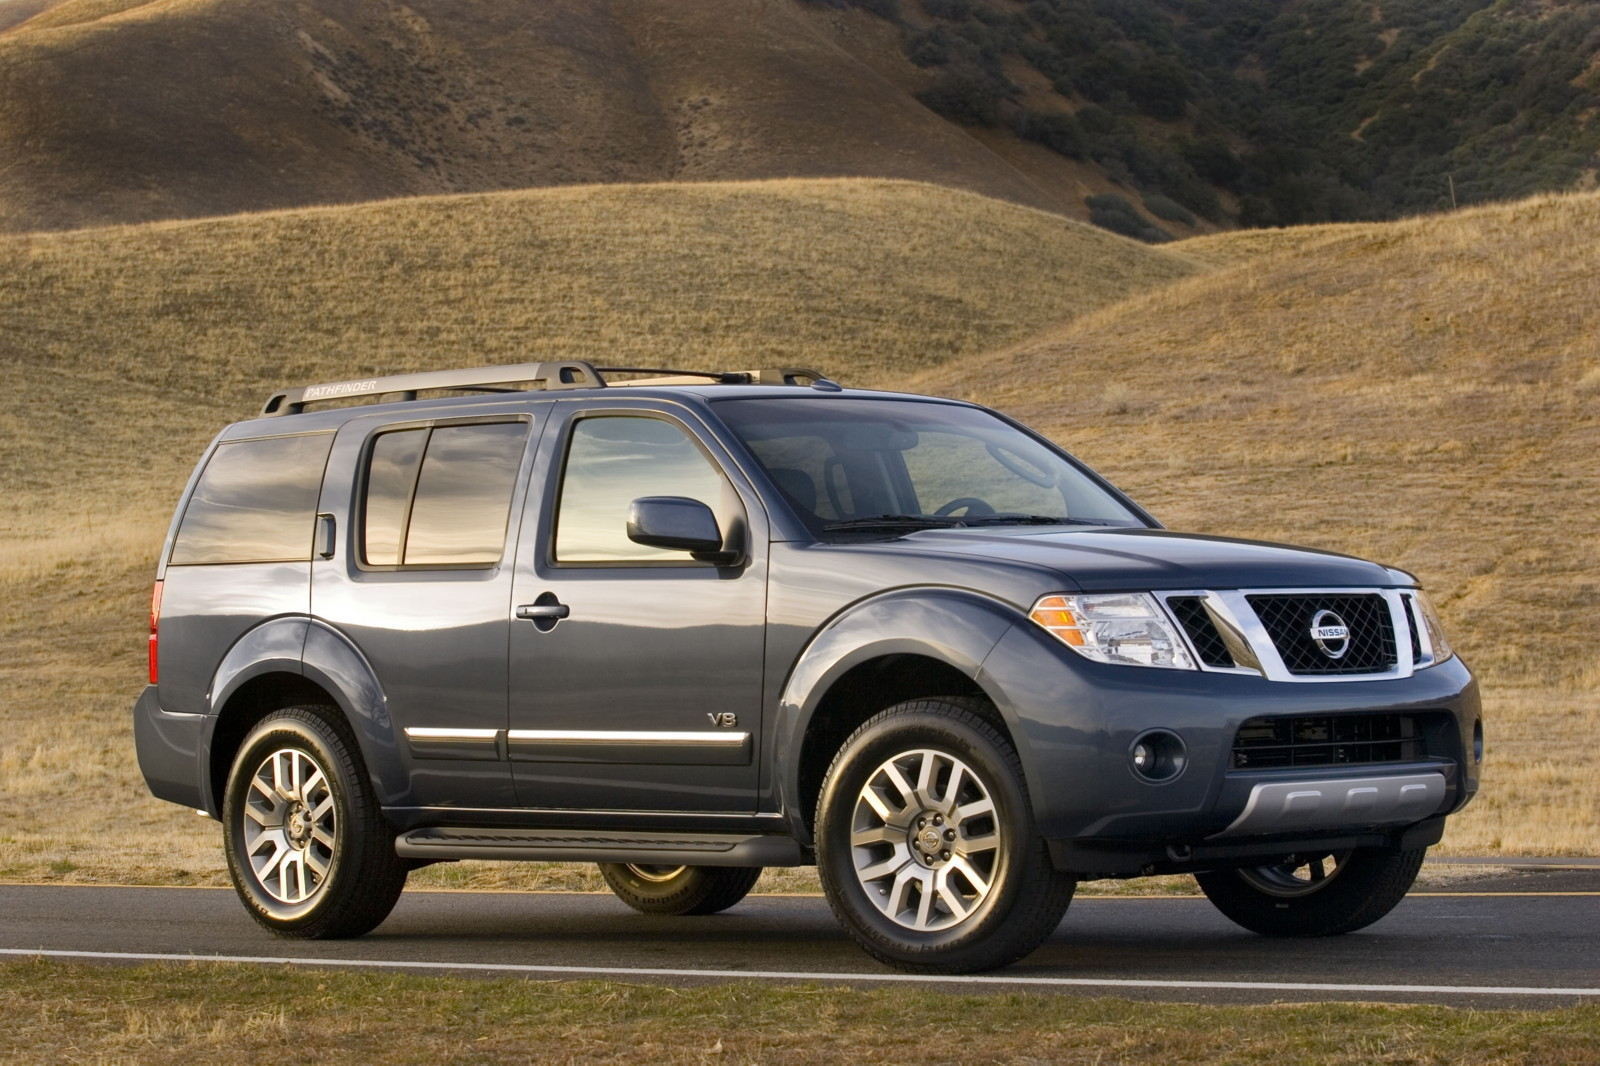 2010 Nissan Pathfinder Review Ratings Specs Prices And